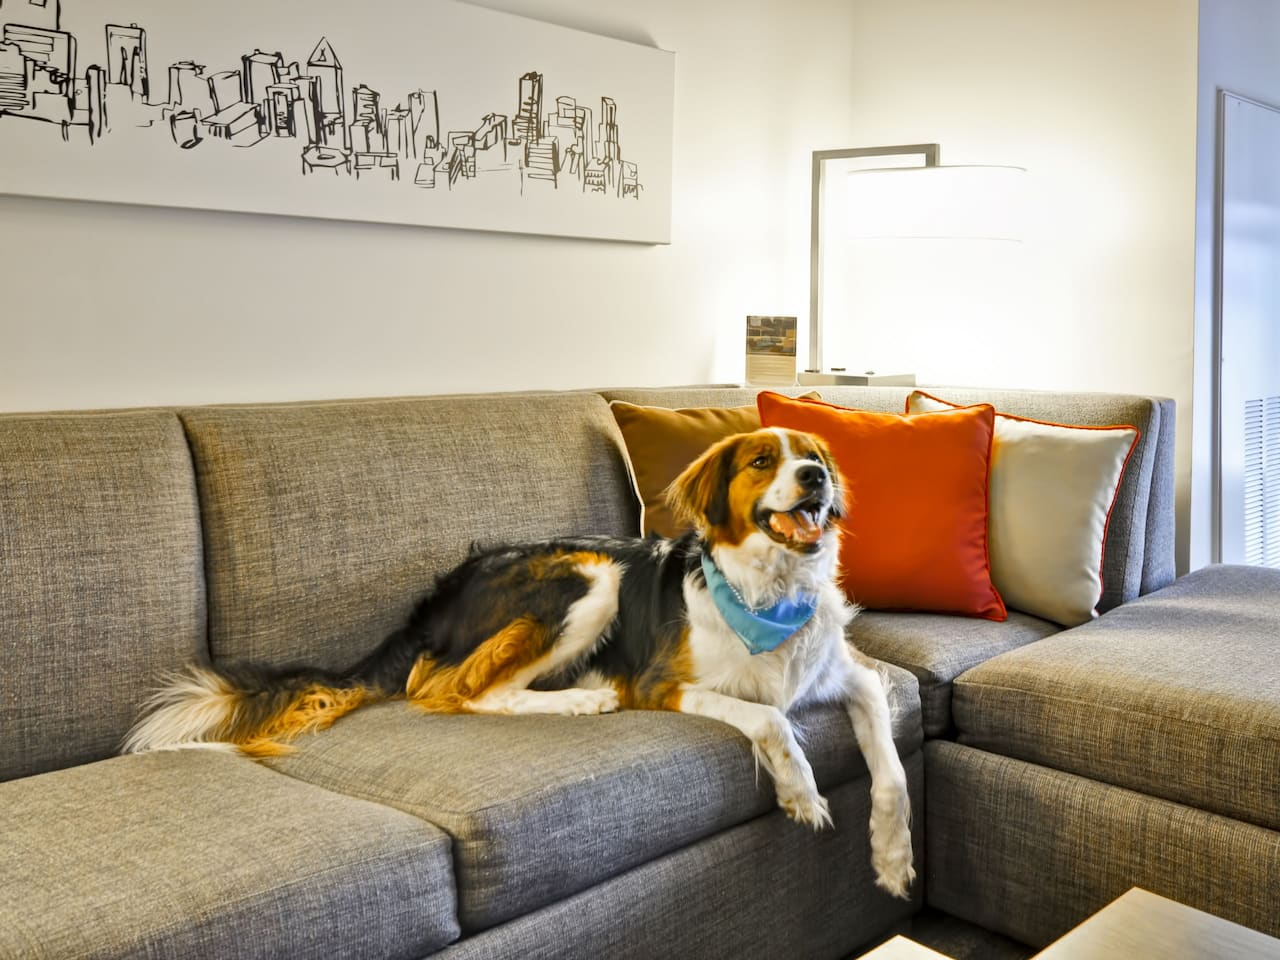 Hyatt Place Tampa Airport/Westshore Dog on the couch